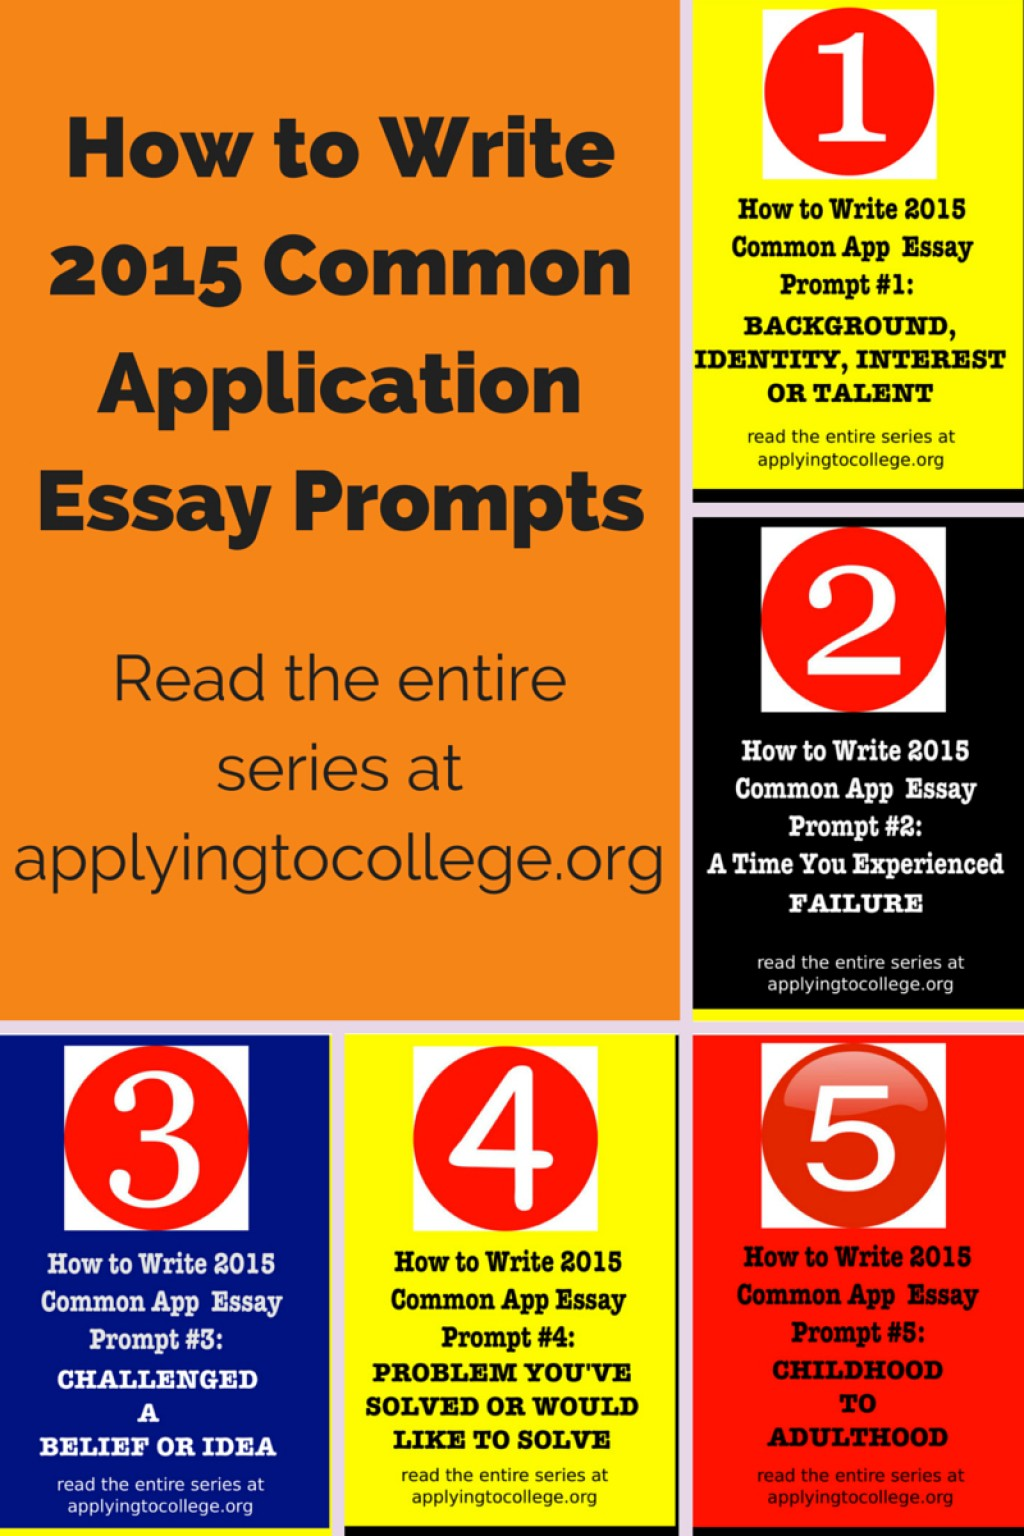 020 How To Write Common Application Essay Prompts Example App Wondrous 2016 Large